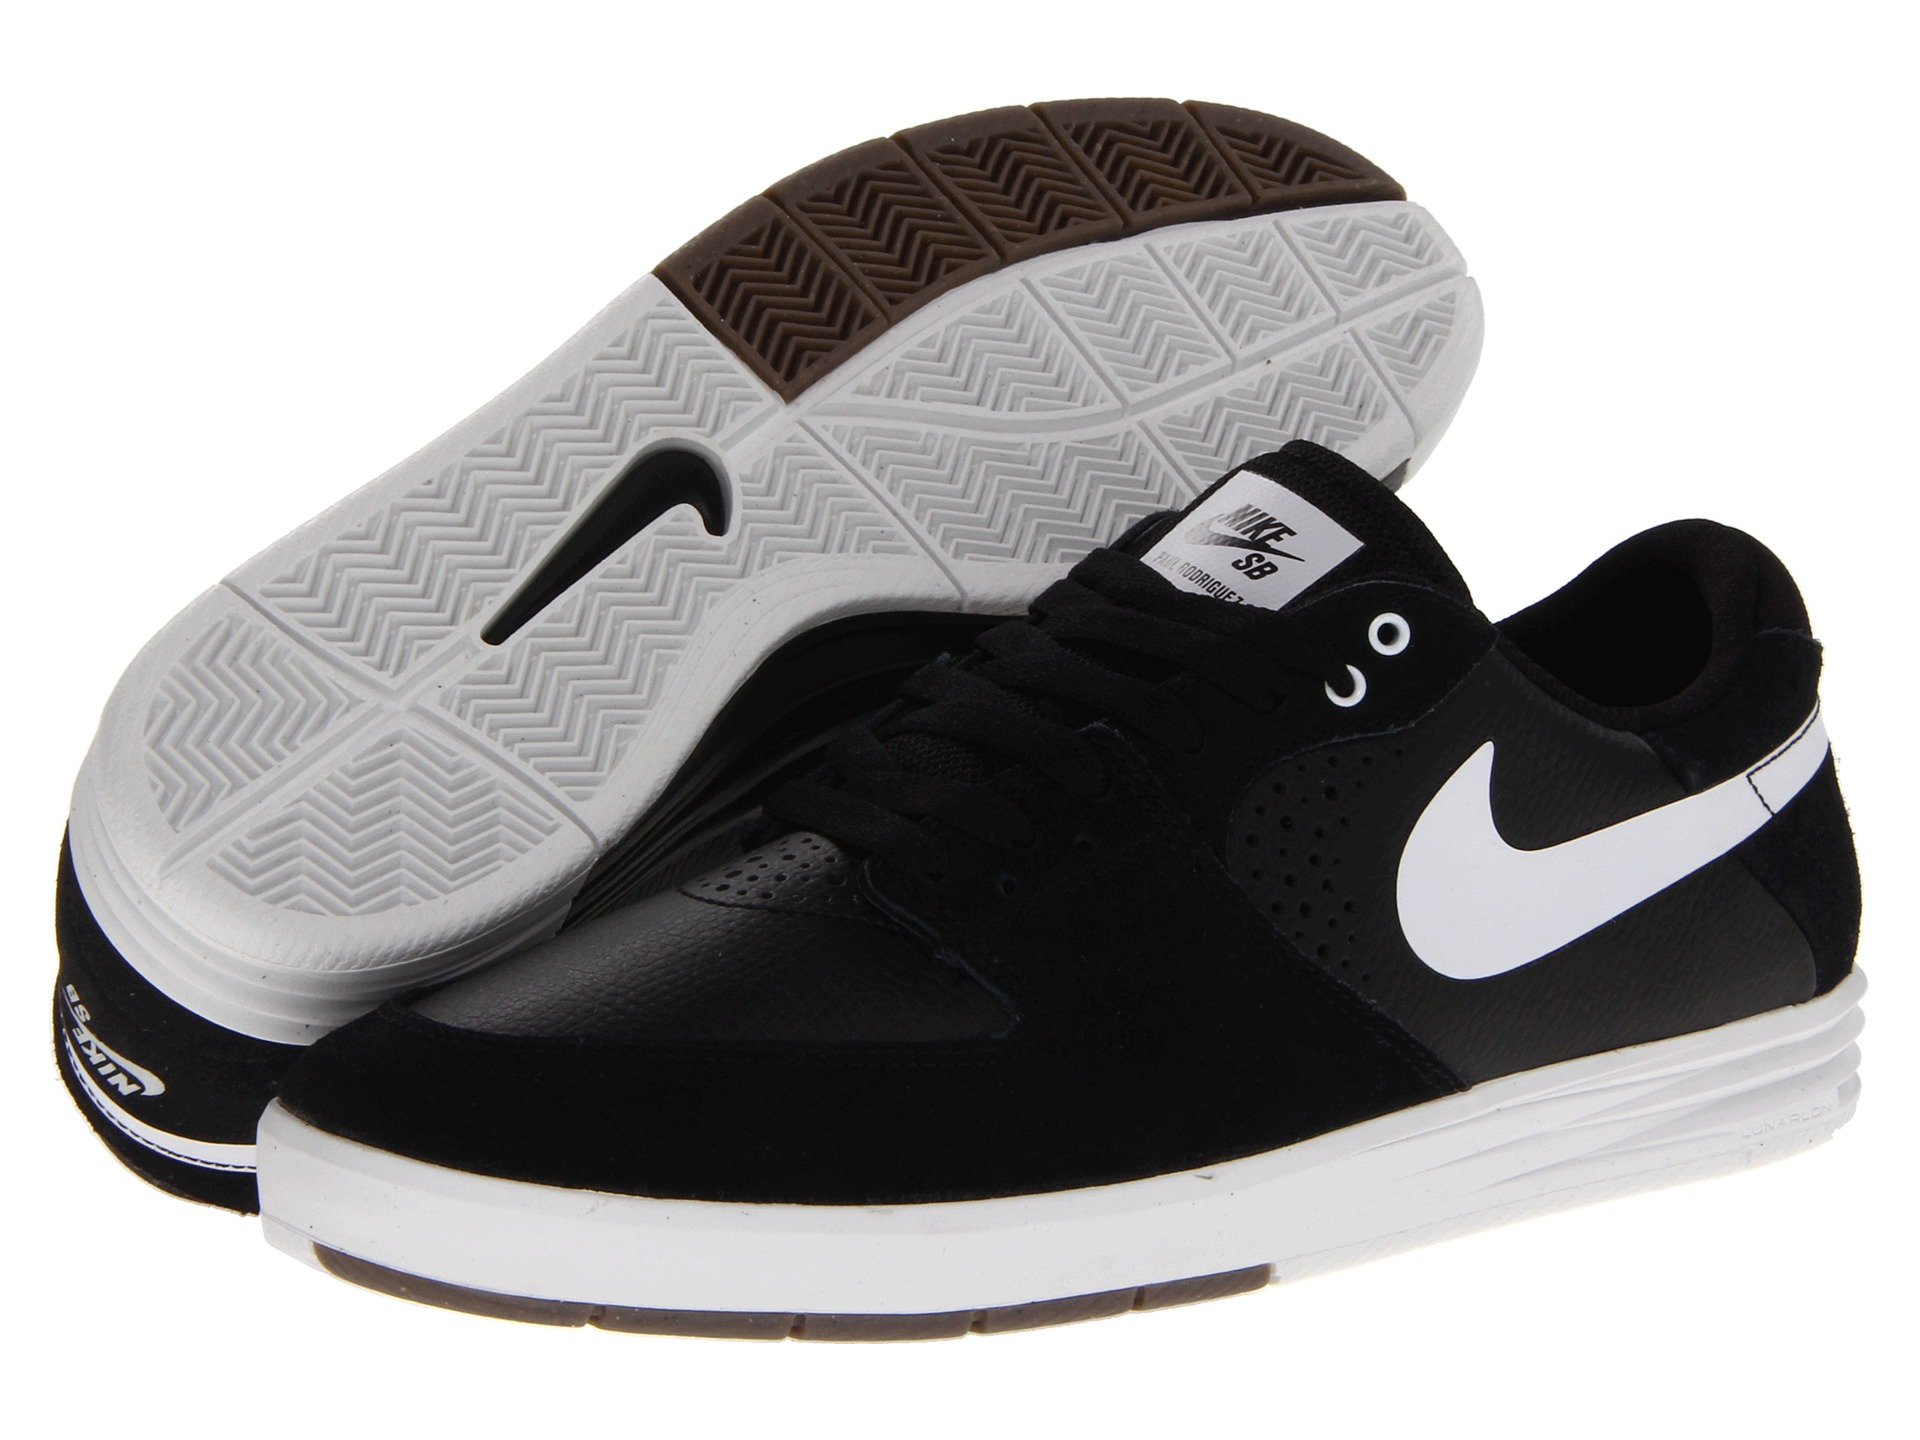 nike sb paul rodriguez 7 shipped free at zappos. Black Bedroom Furniture Sets. Home Design Ideas